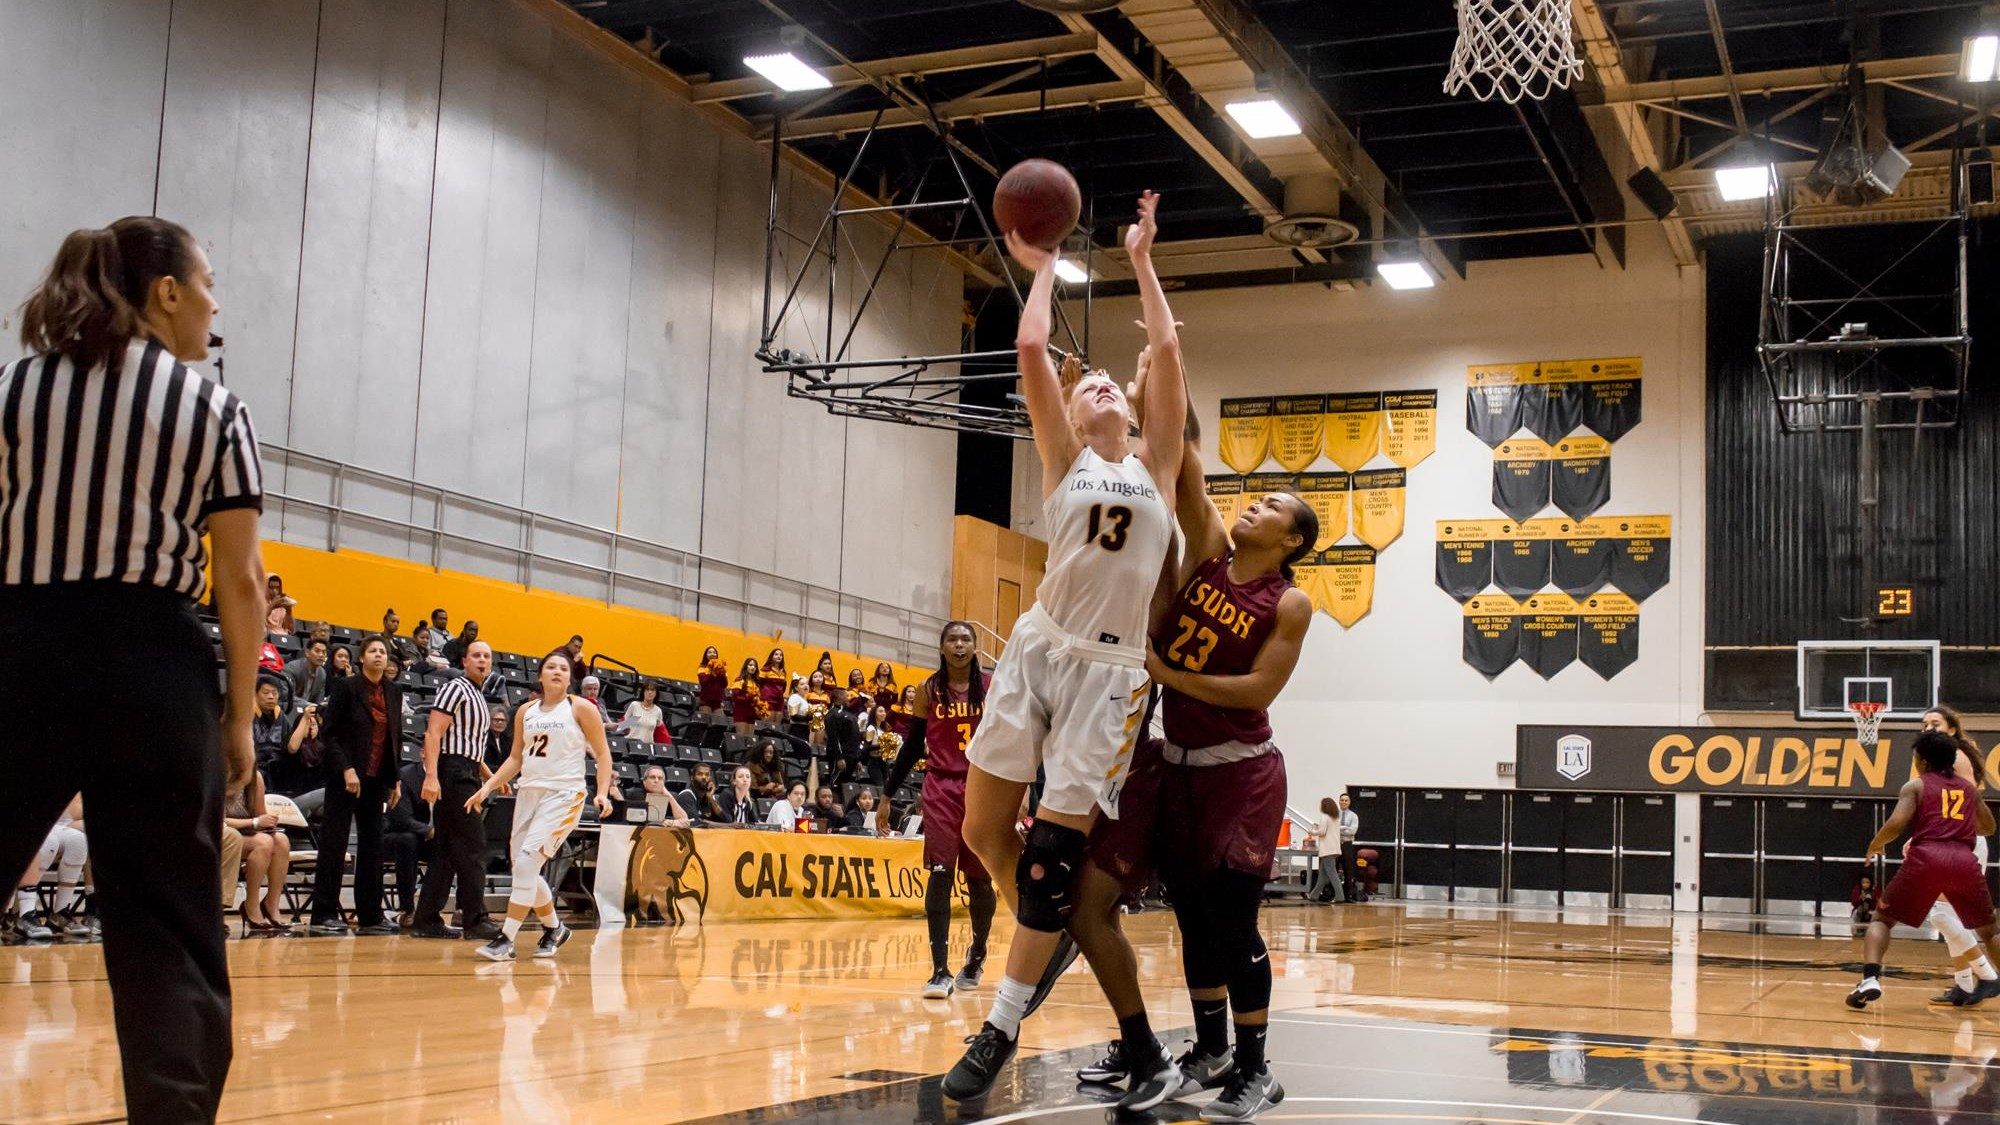 Cal State Los Angeles Defeats Men's Basketball 82-66 ...